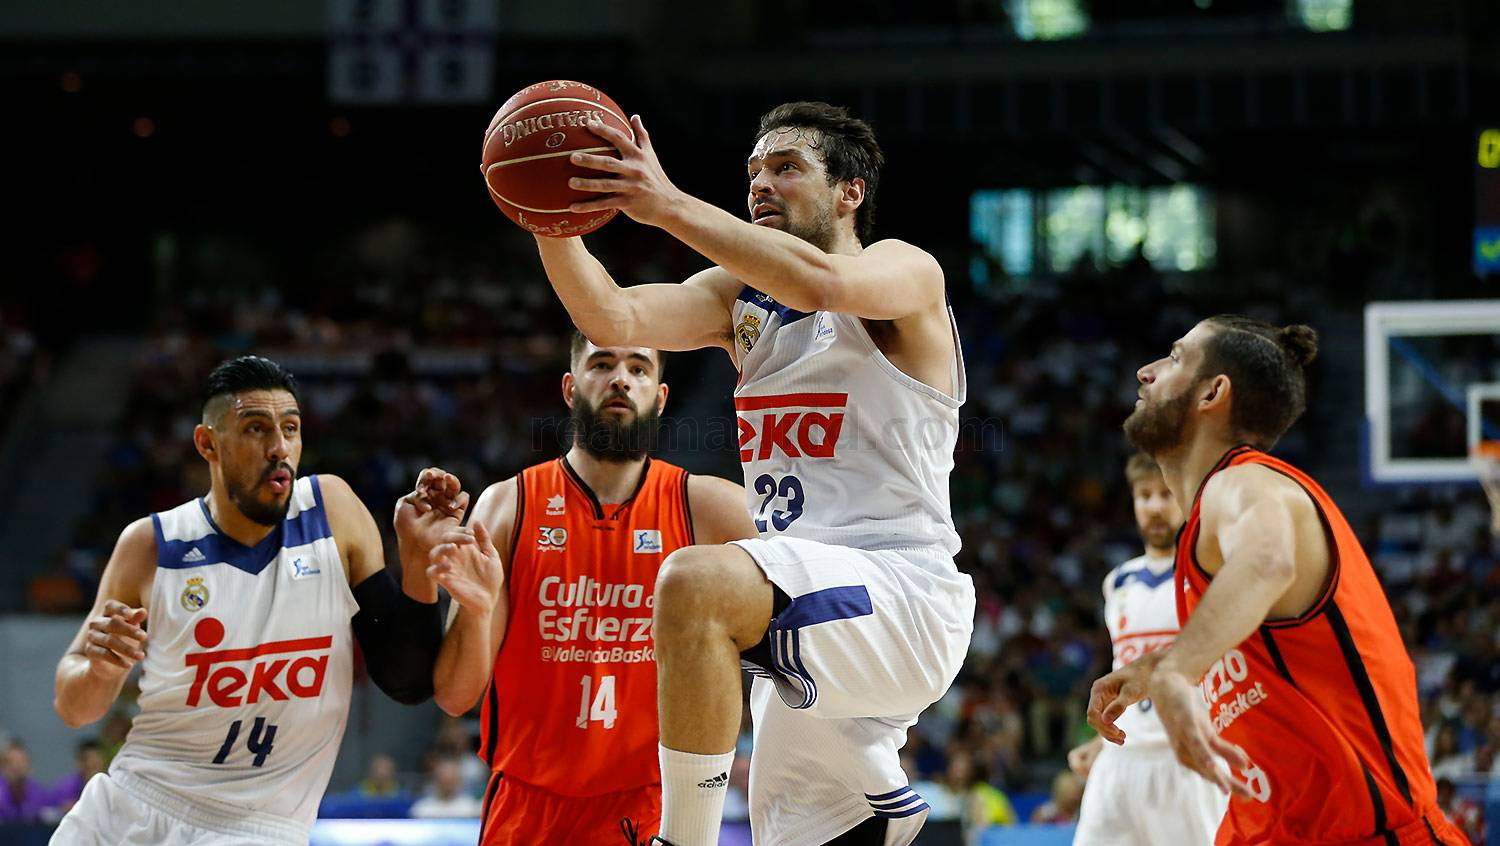 Real Madrid - Real Madrid - Valencia Basket - 11-06-2017